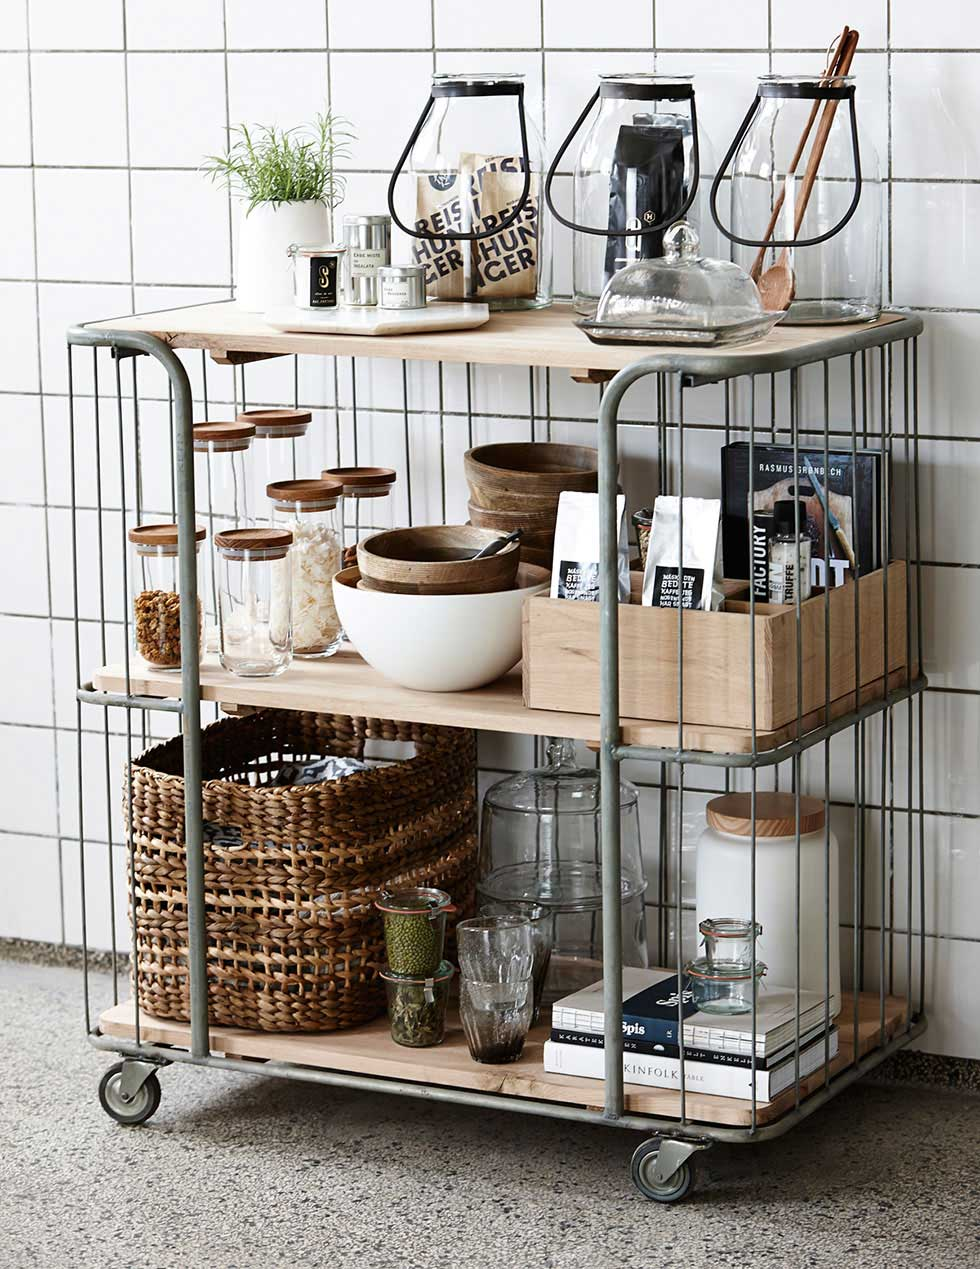 GO-FOR-MOBILE-STORAGE--mobile-trolley-storage-Kitchen-Trolley-Shelves